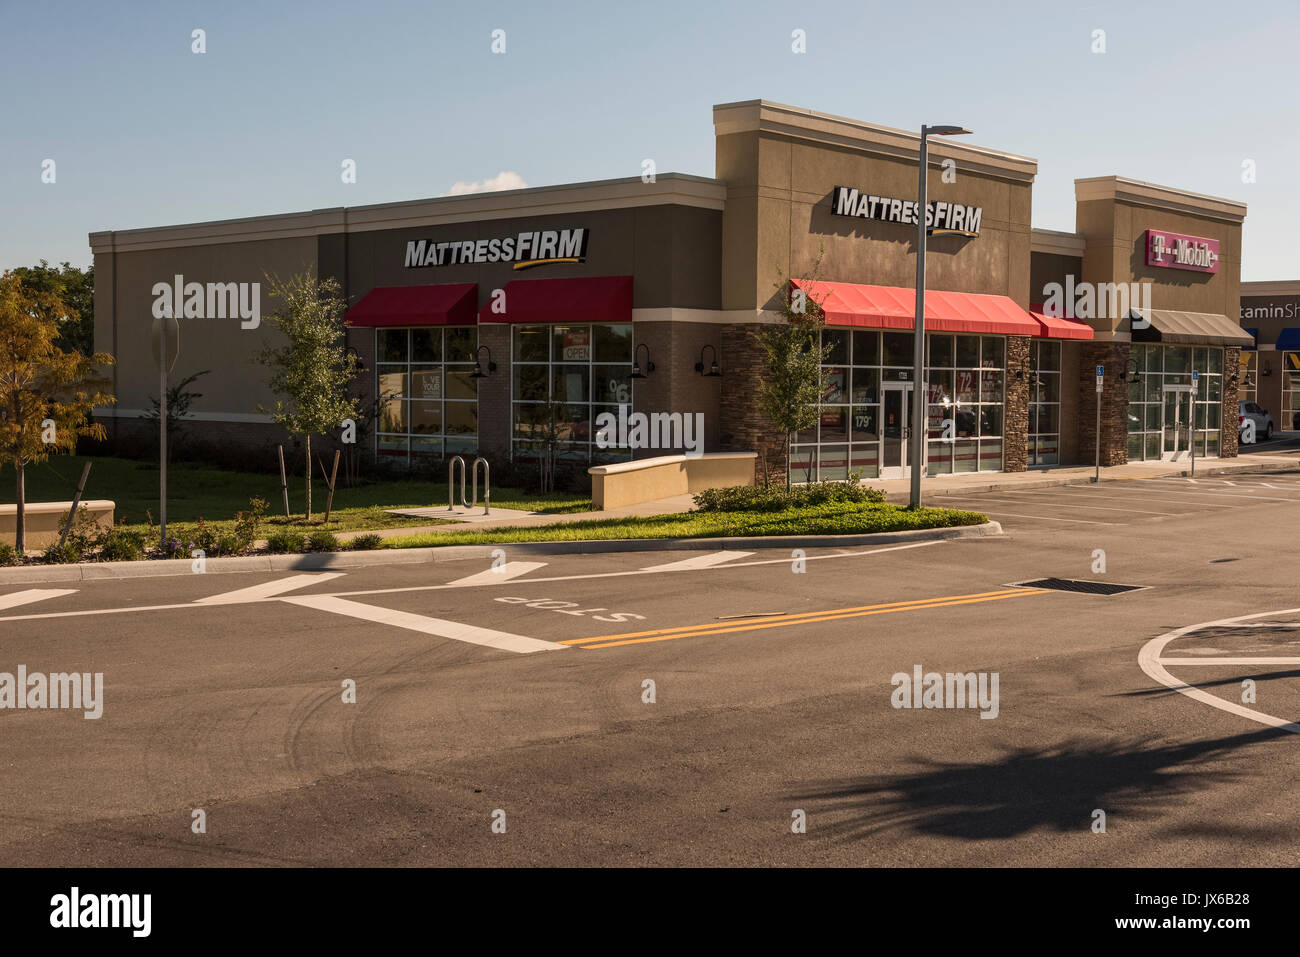 mattress store stock photos mattress store stock images alamy